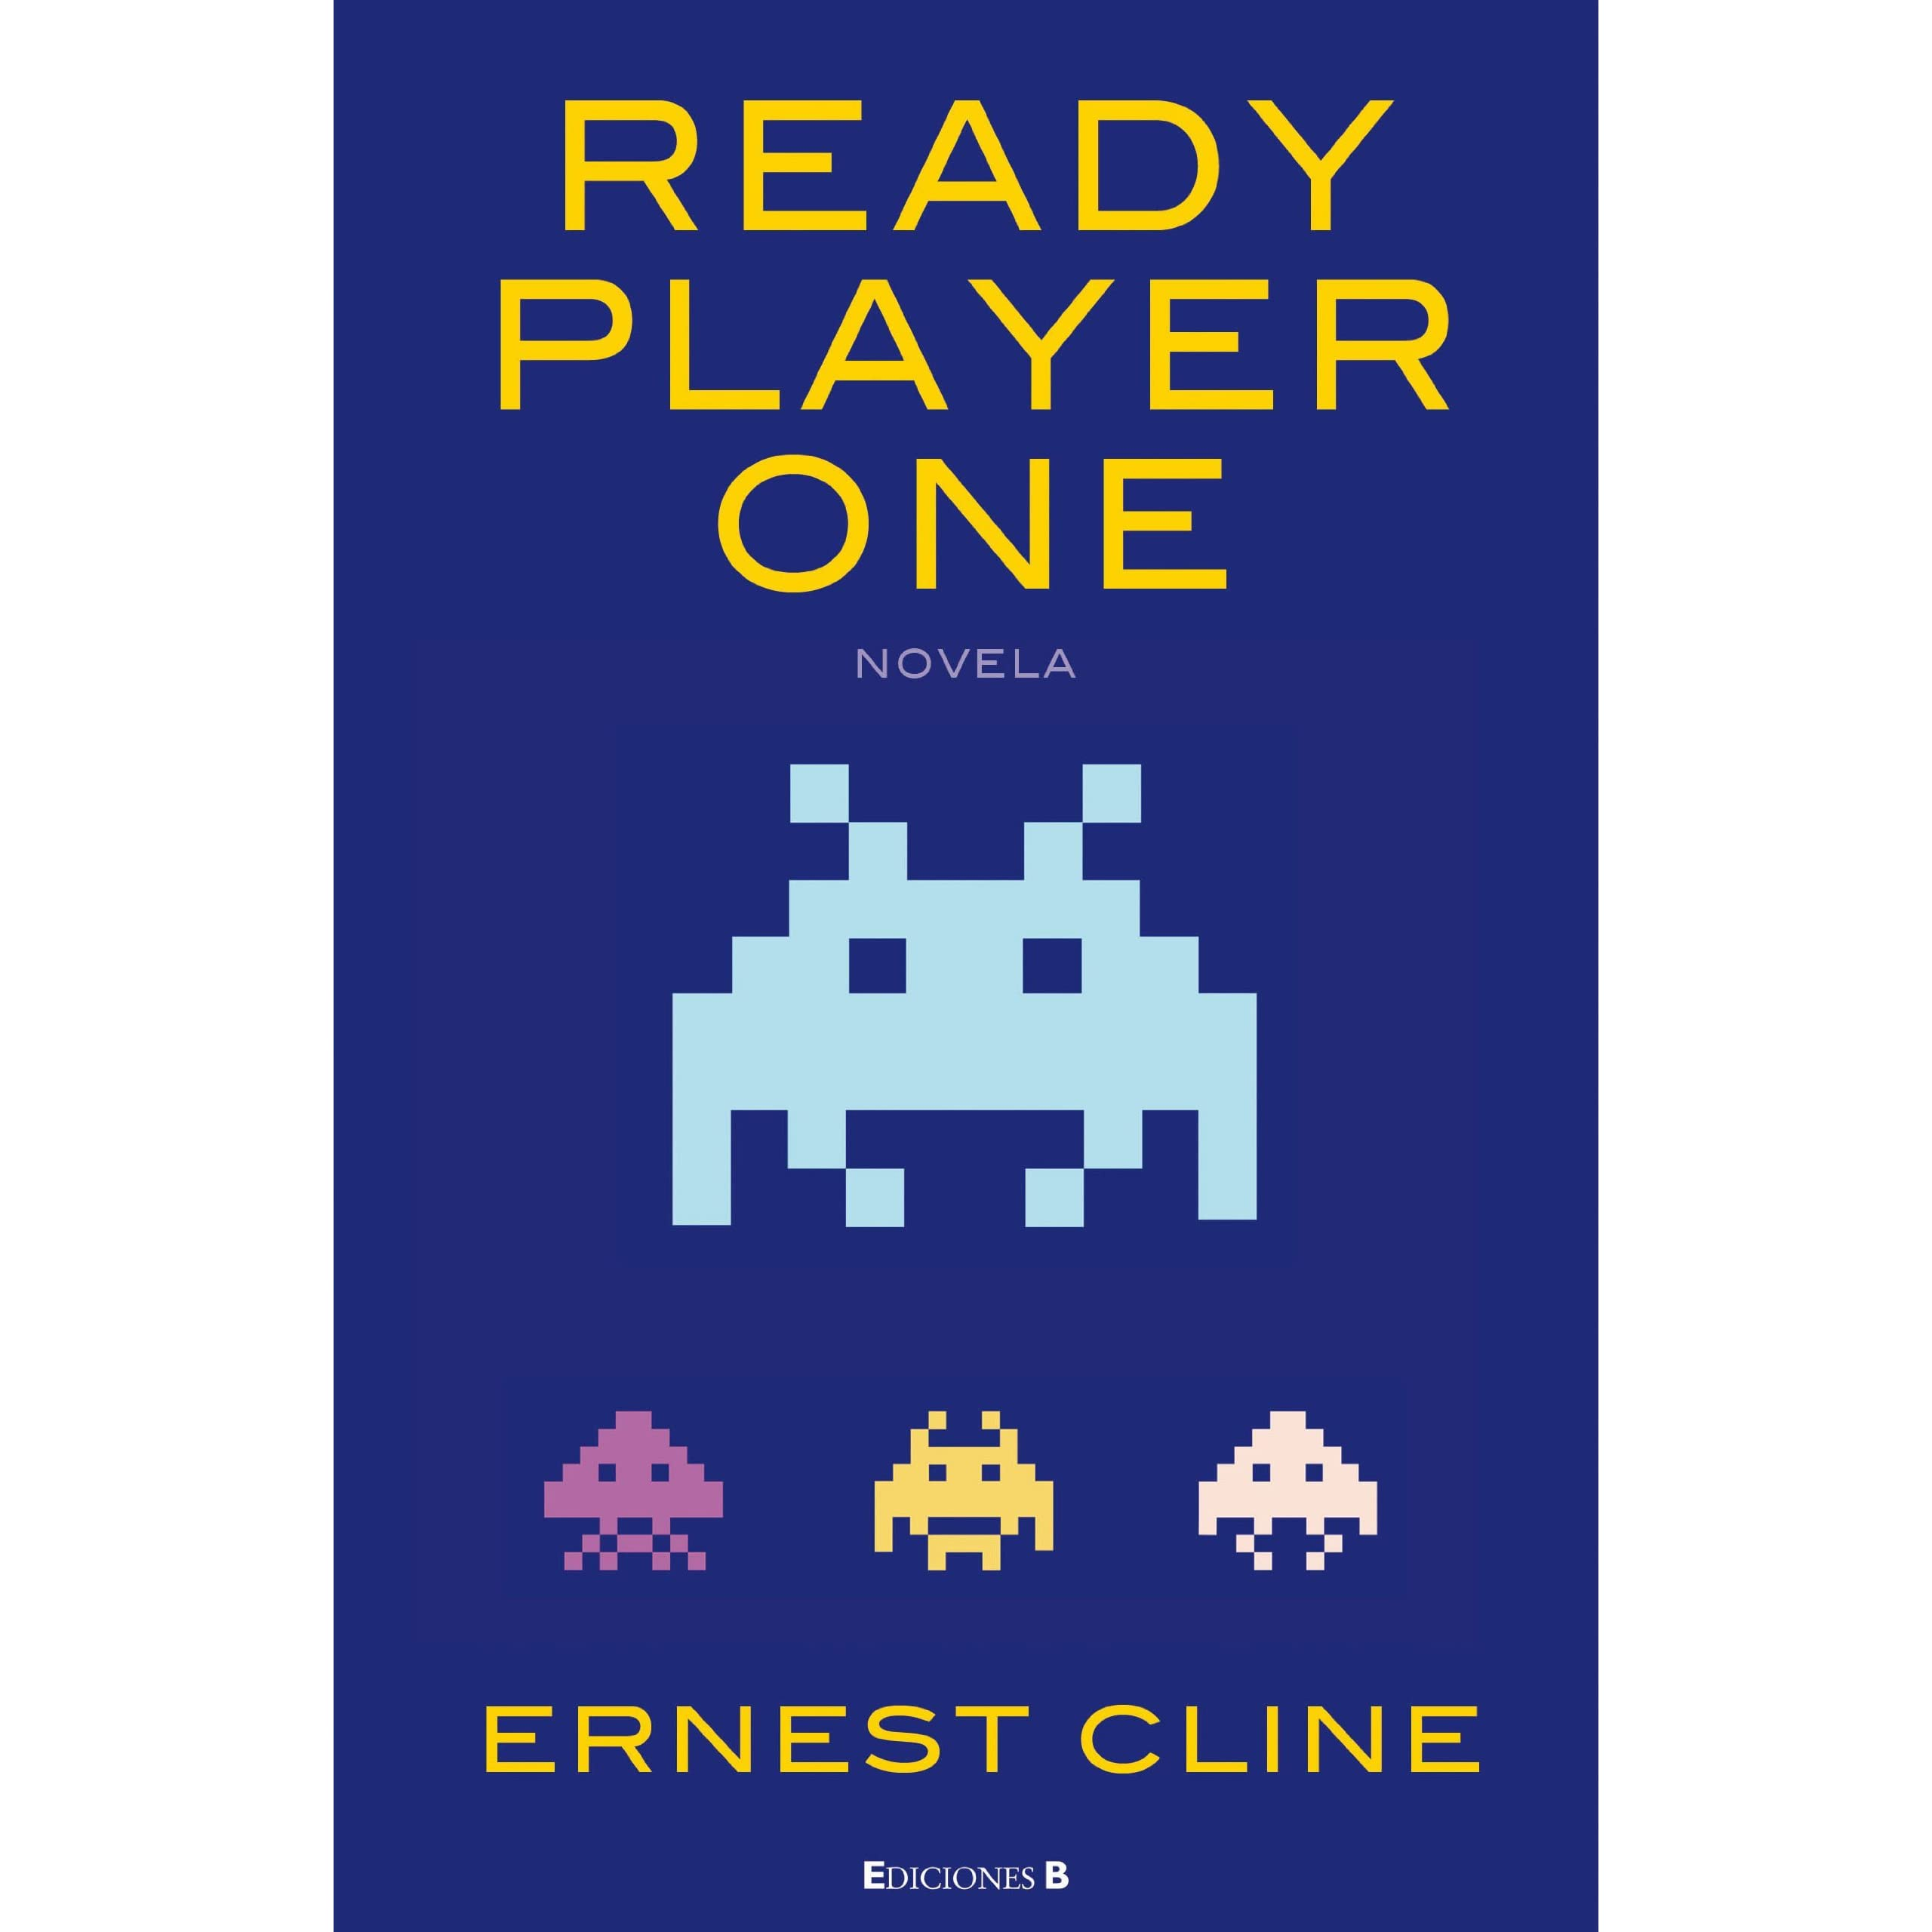 Ready Player One Quotes Love: Ready Player One By Ernest Cline